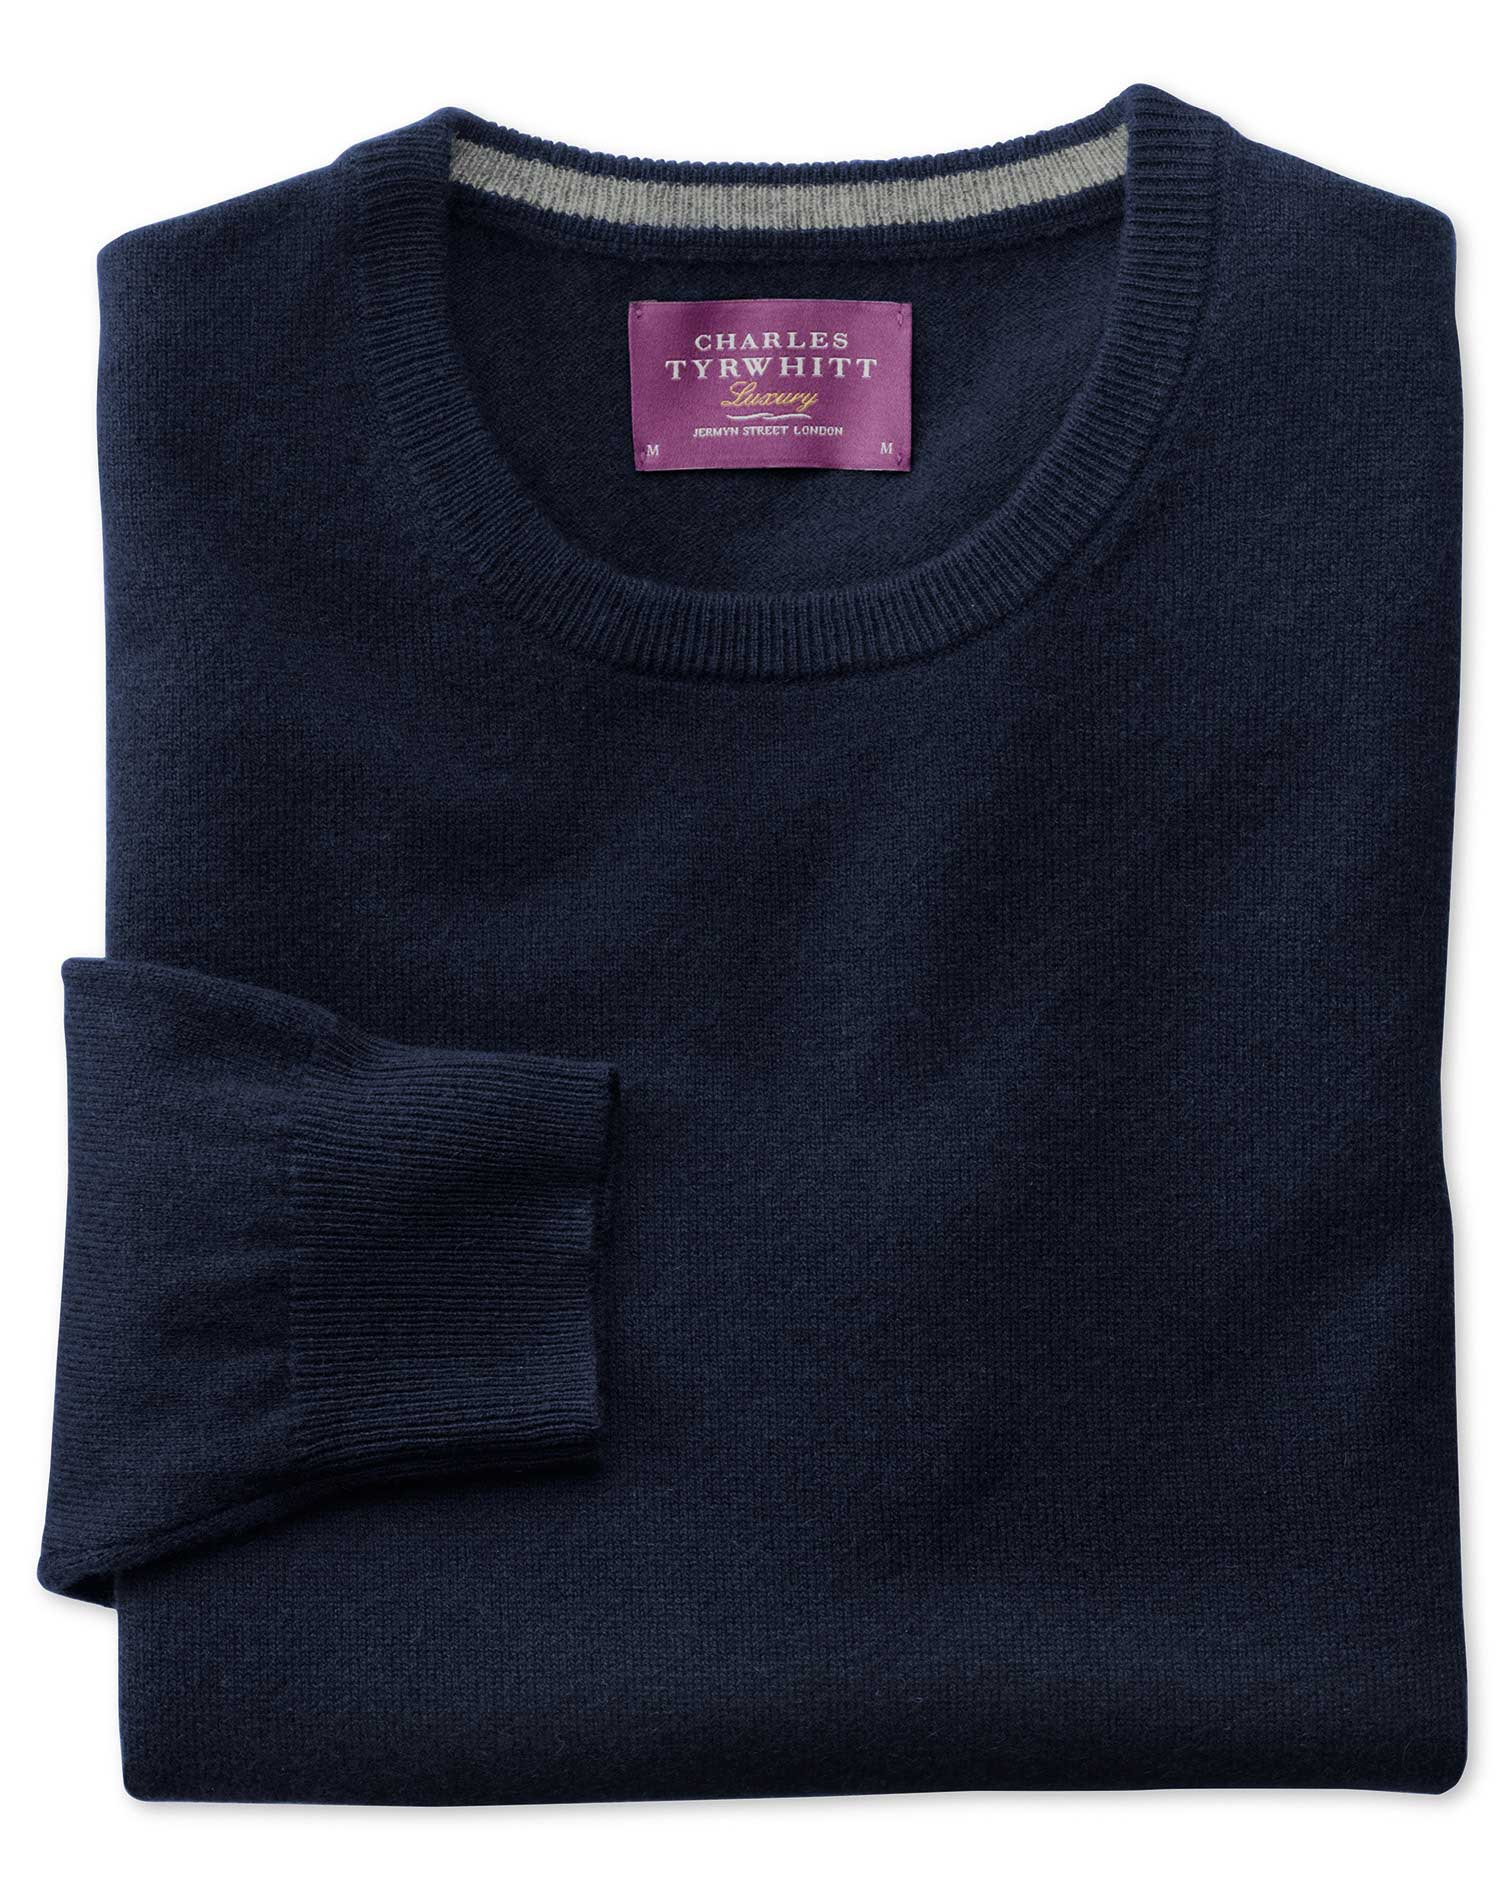 Navy Cashmere Crew Neck Jumper Size Small by Charles Tyrwhitt